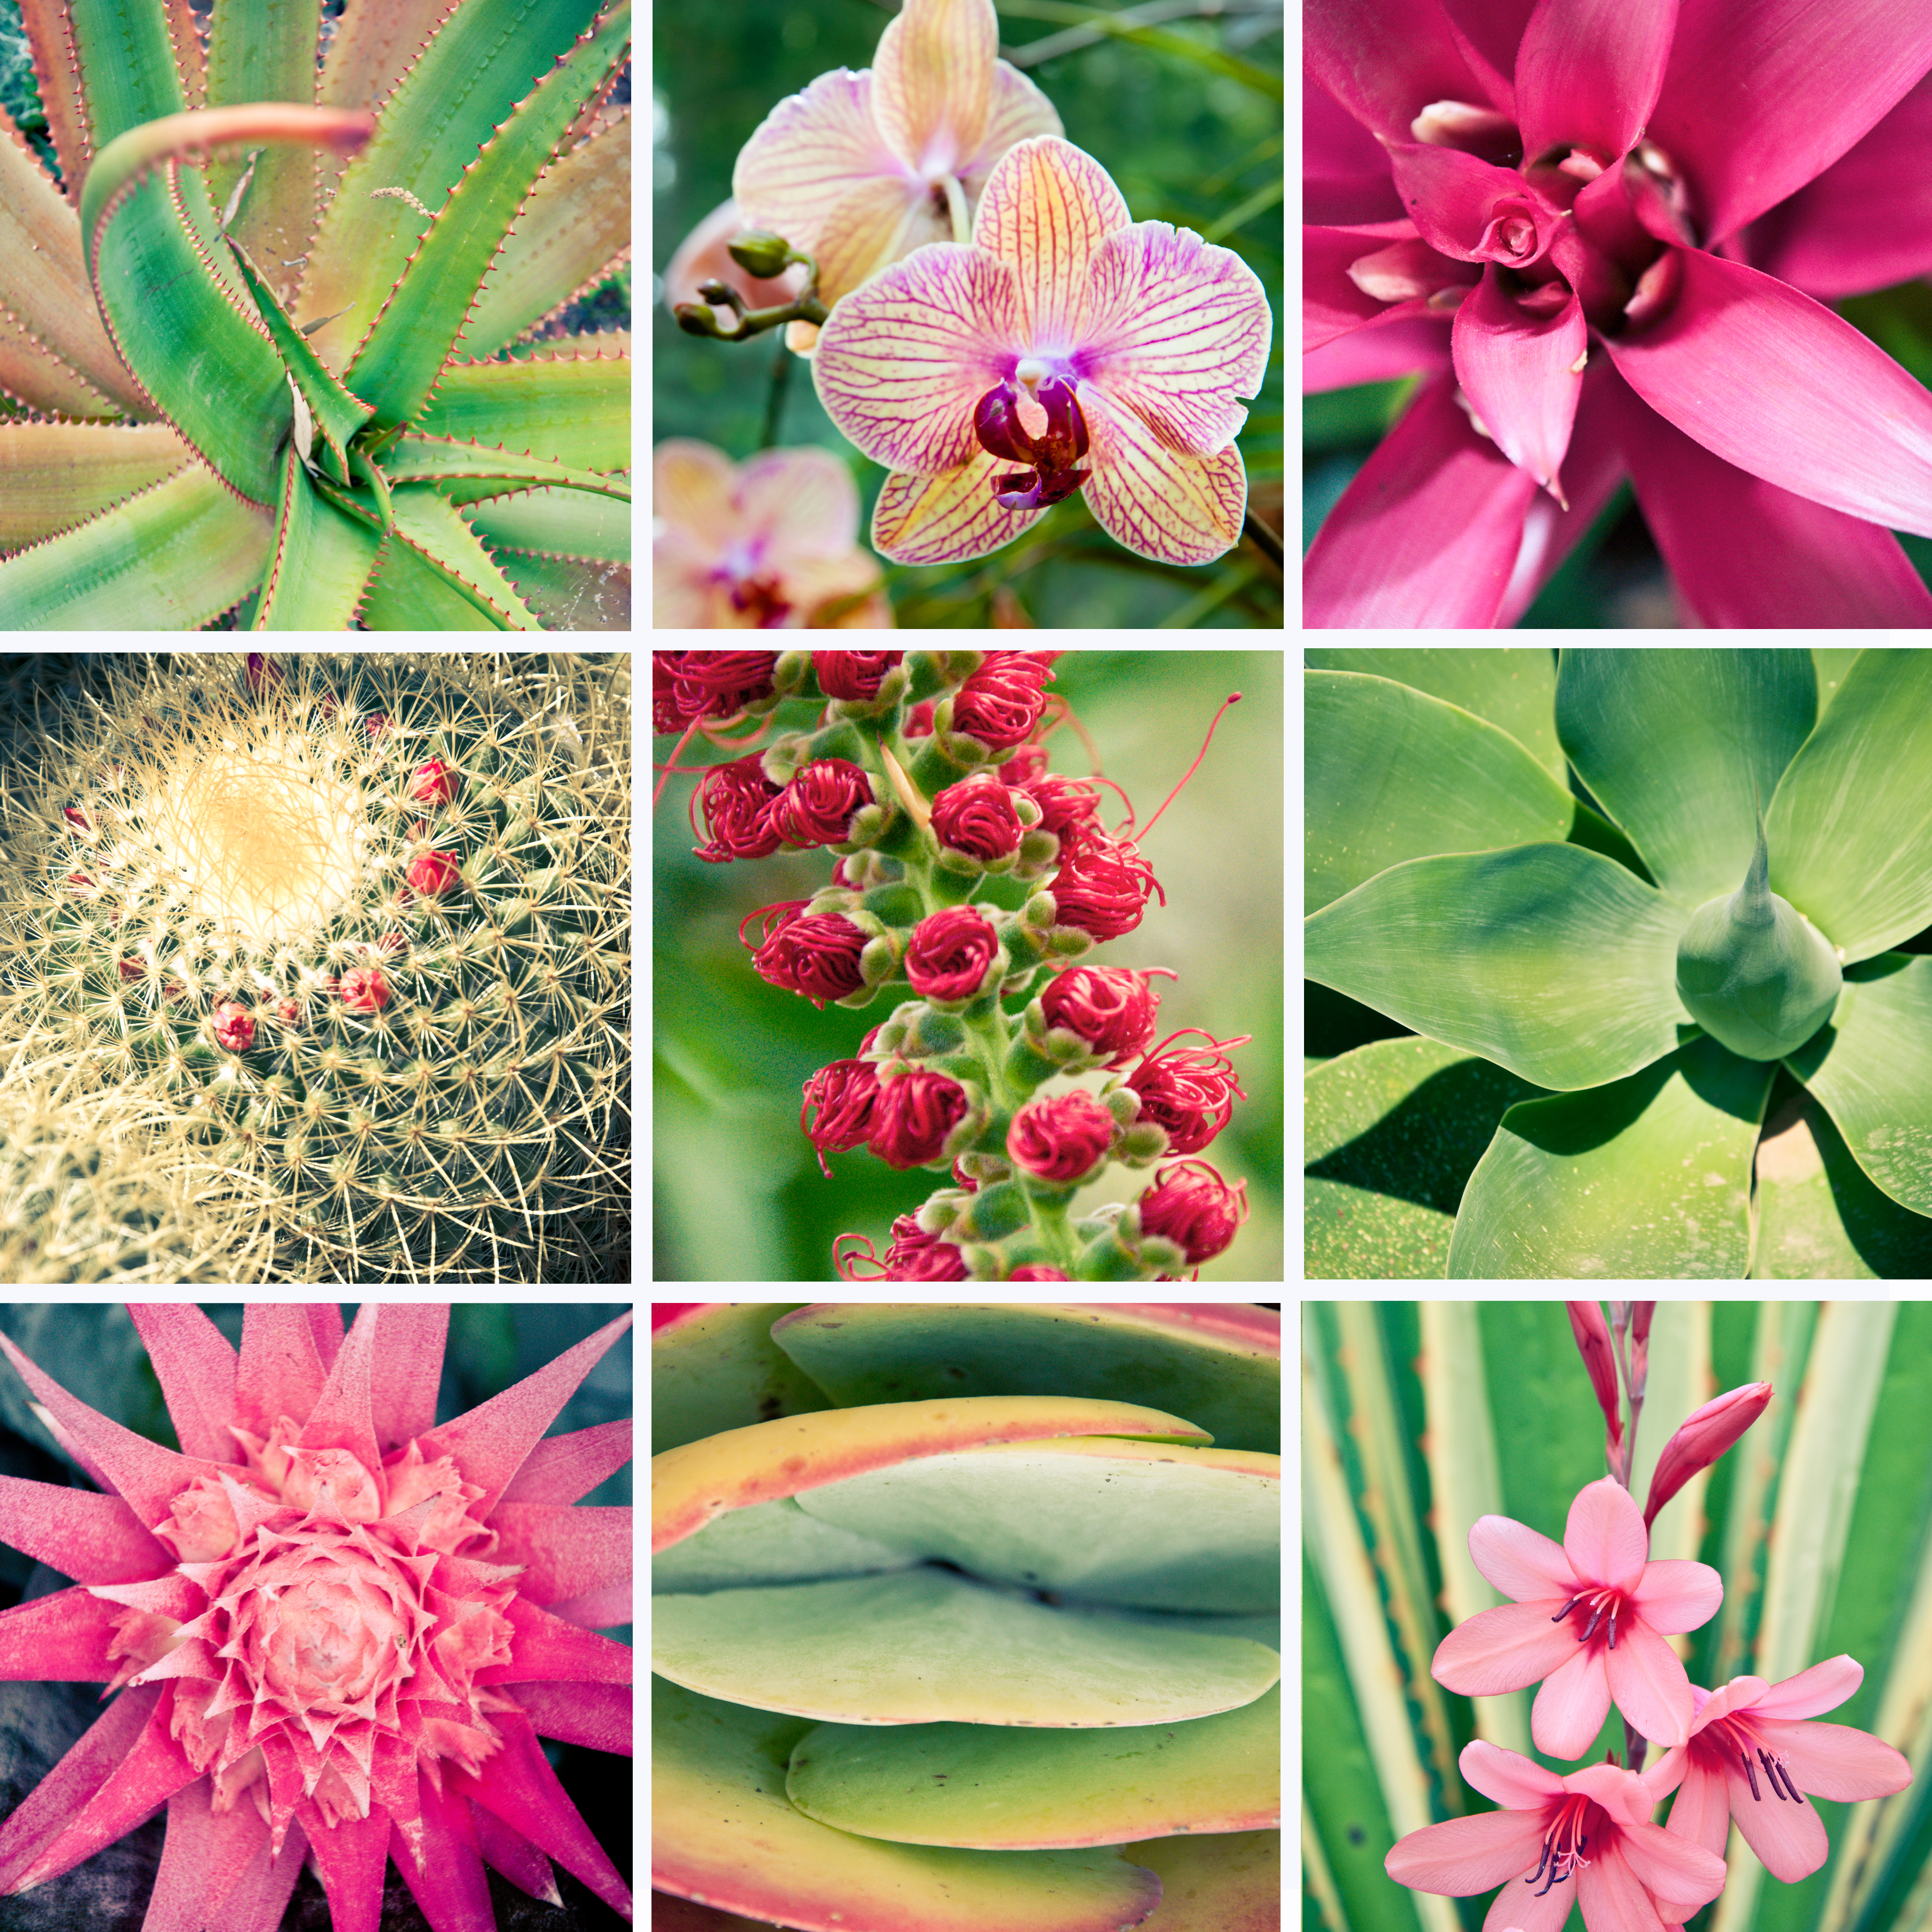 Pink fower and plant collage photo